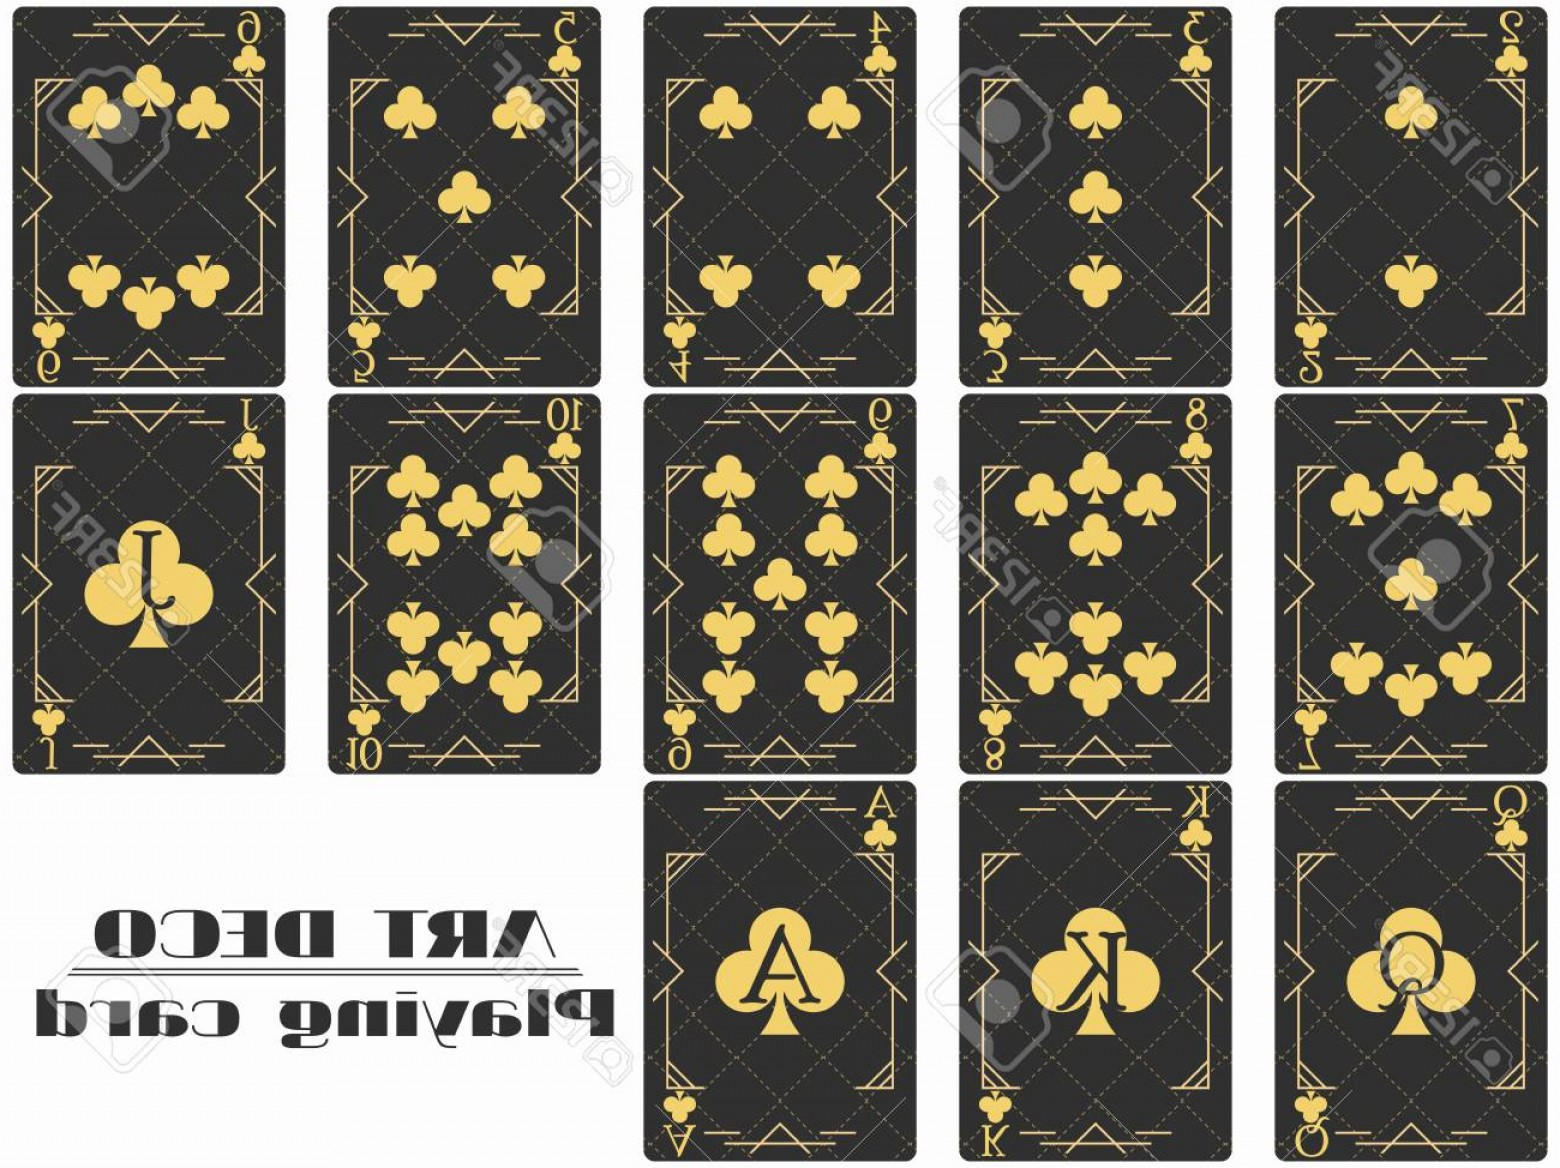 Playing Card Design Vector Illustration: Photostock Vector Playing Cards Club Suit Poker Cards Original Design Art Deco Style Vector Illustration